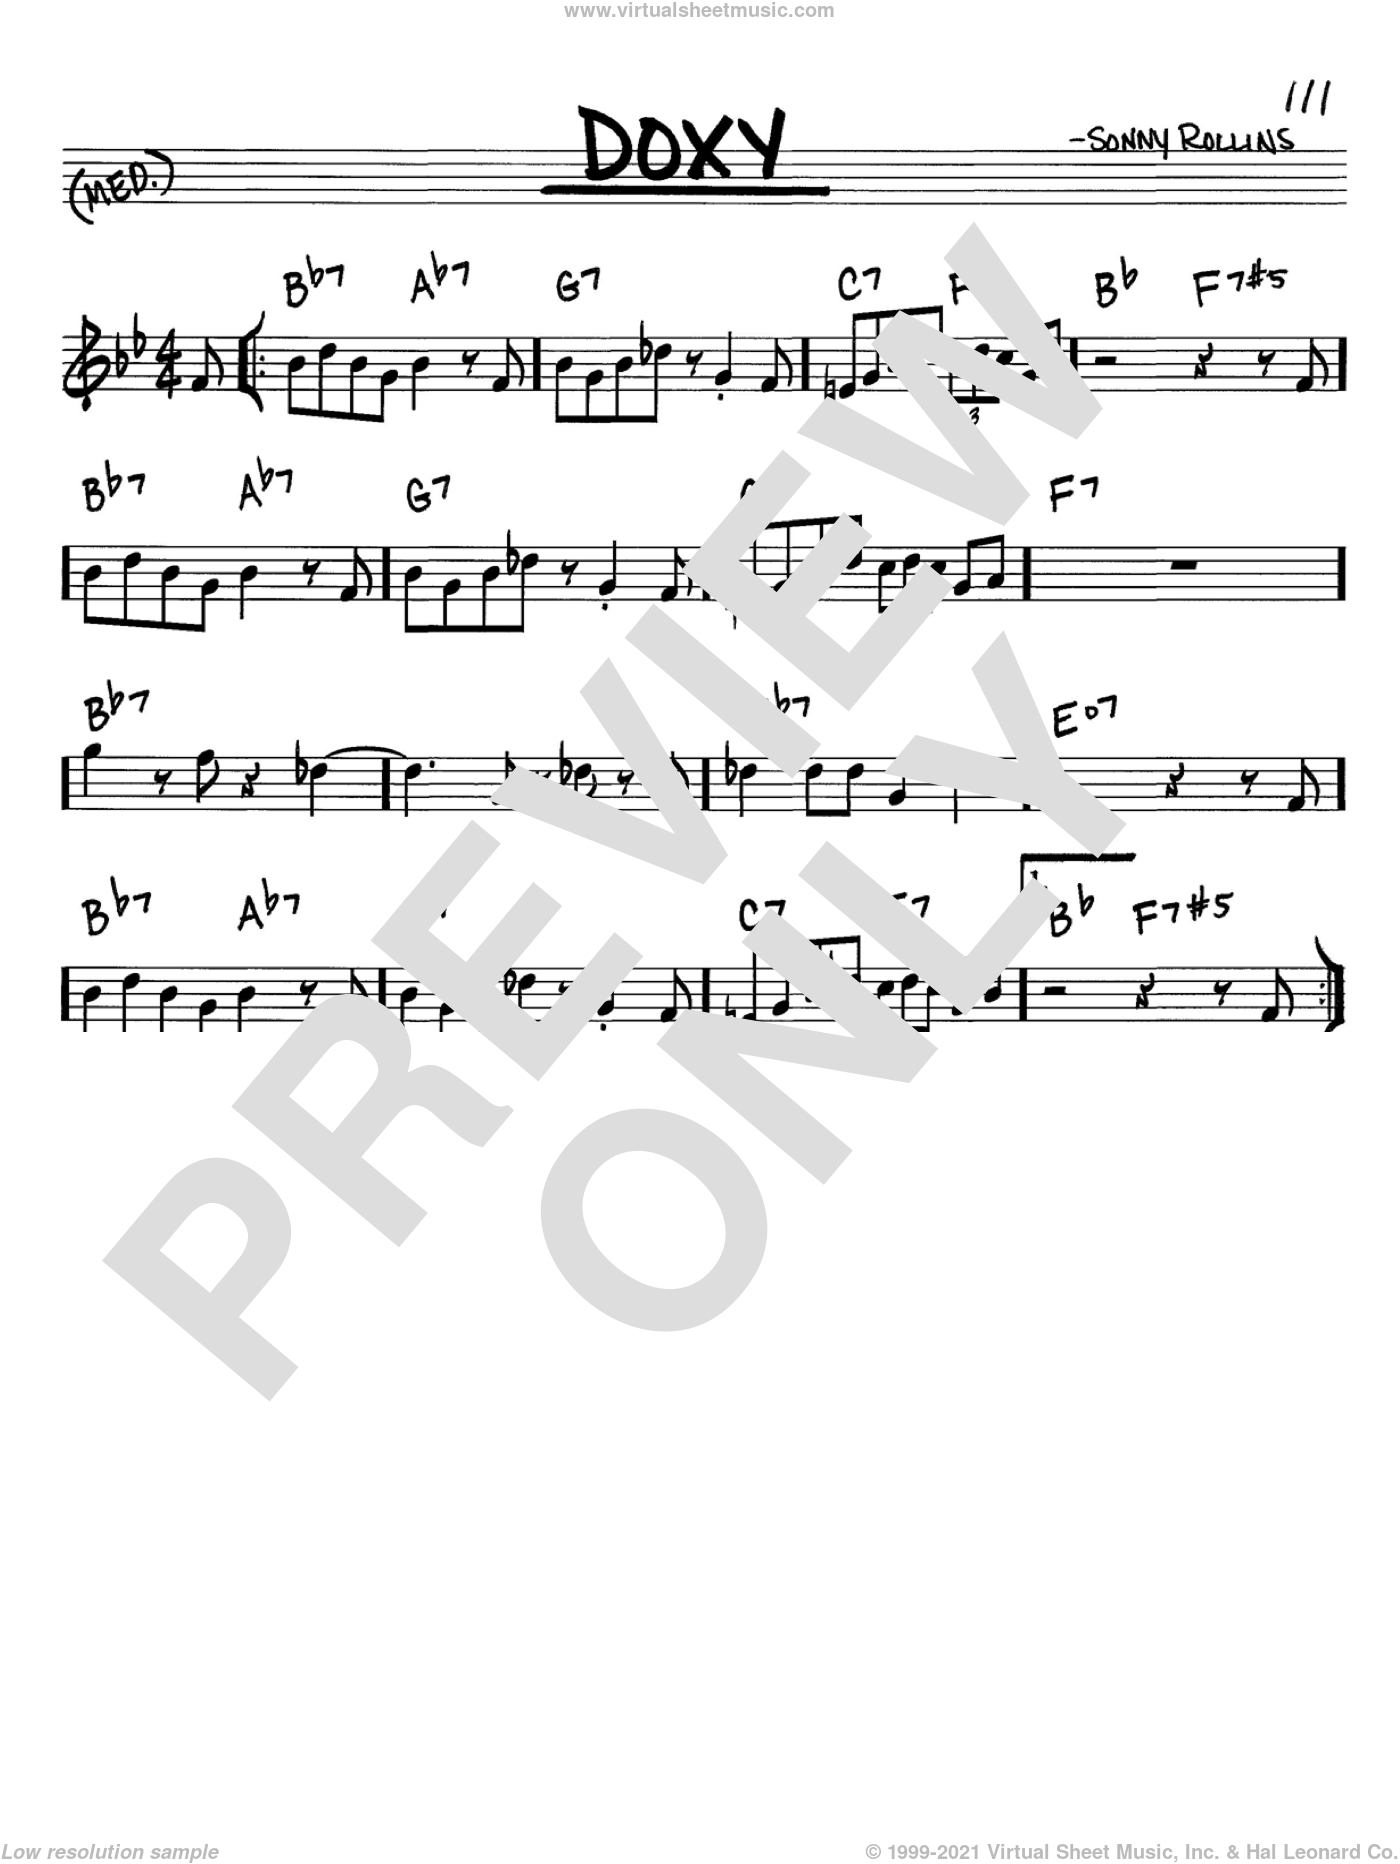 Rollins - Doxy sheet music (real book - melody and chords) (in C)